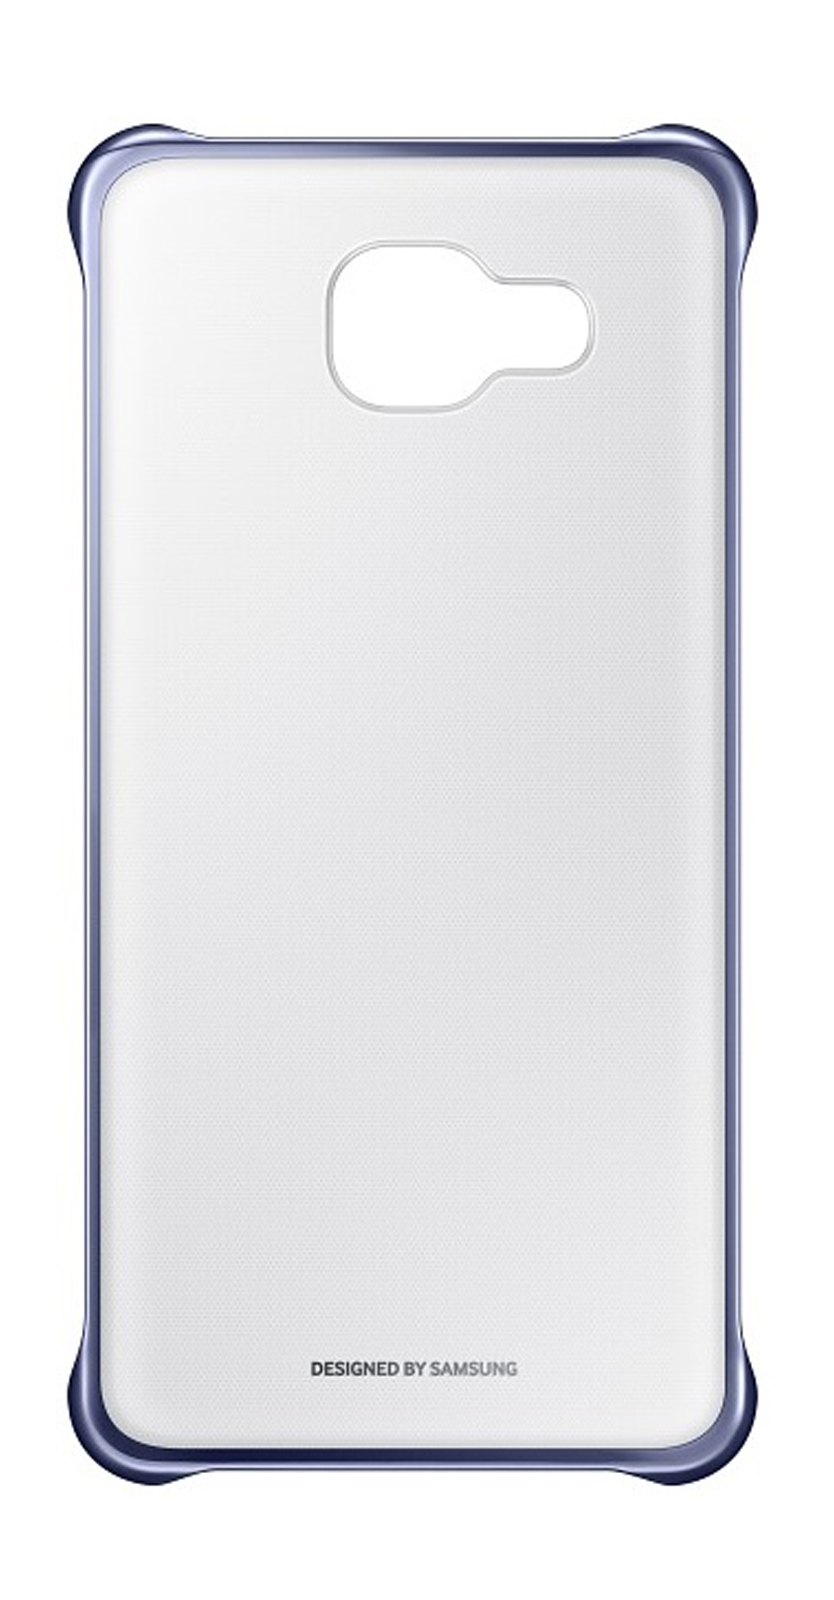 new style 87a56 12f1f Details about Official Samsung Galaxy A5 2016 A510 Blue / Black Clear Cover  - EF-QA510CBEGWW